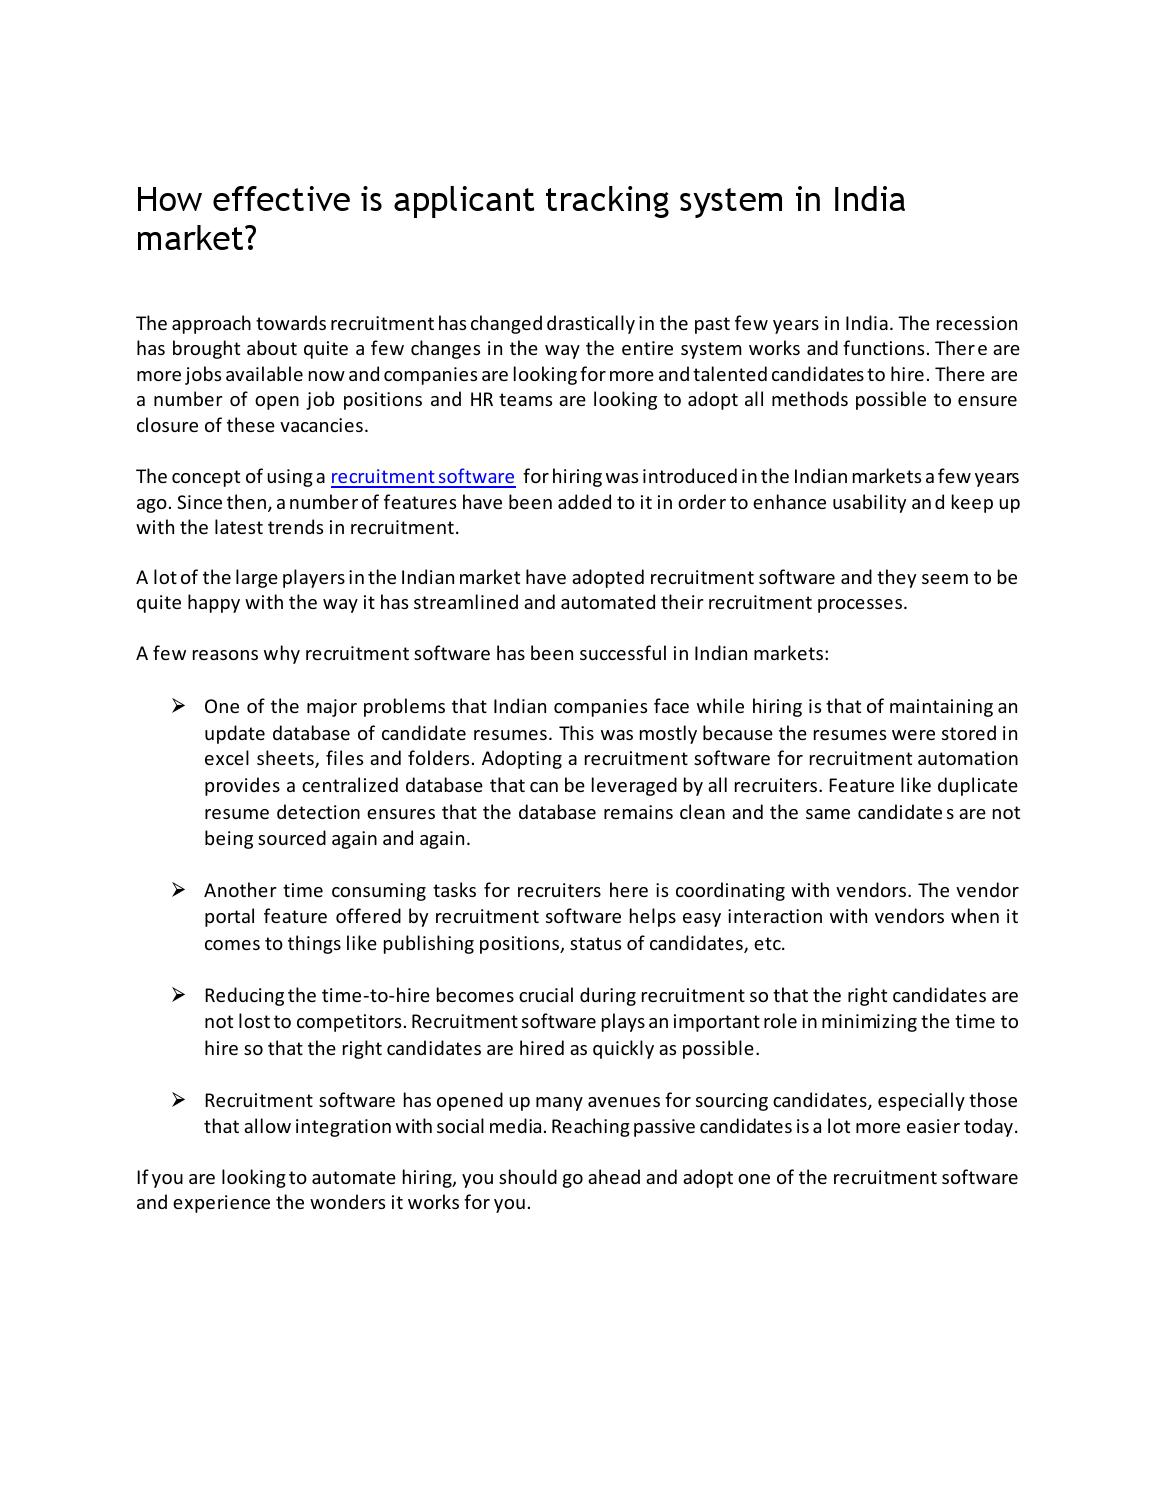 How effective is applicant tracking system in india market by ...